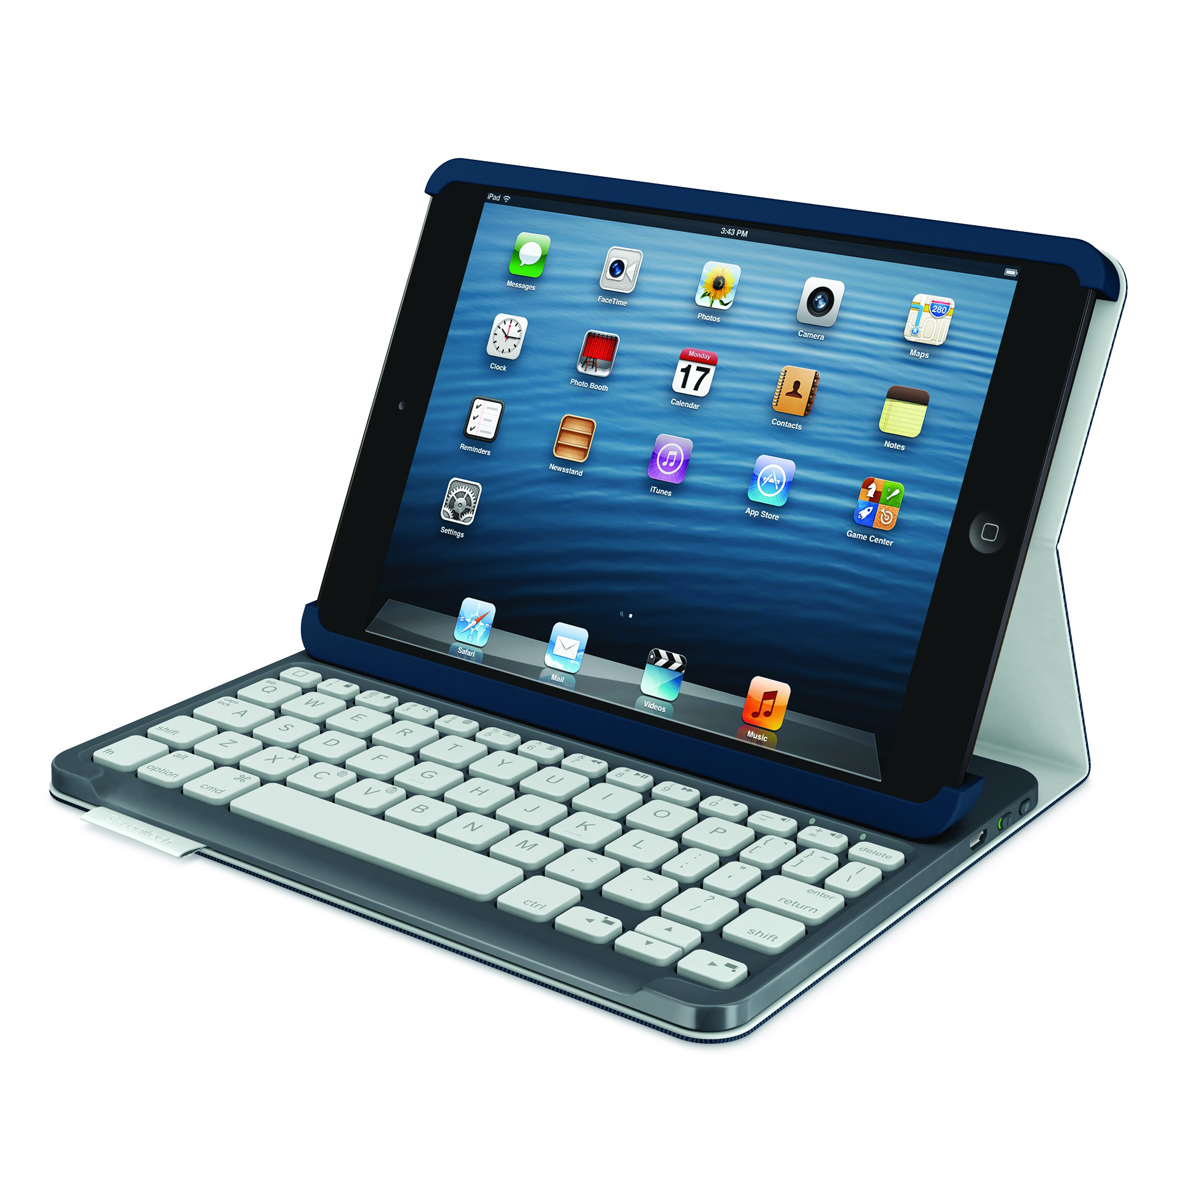 logitech keybord folio for ipad mini mysticblue. Black Bedroom Furniture Sets. Home Design Ideas